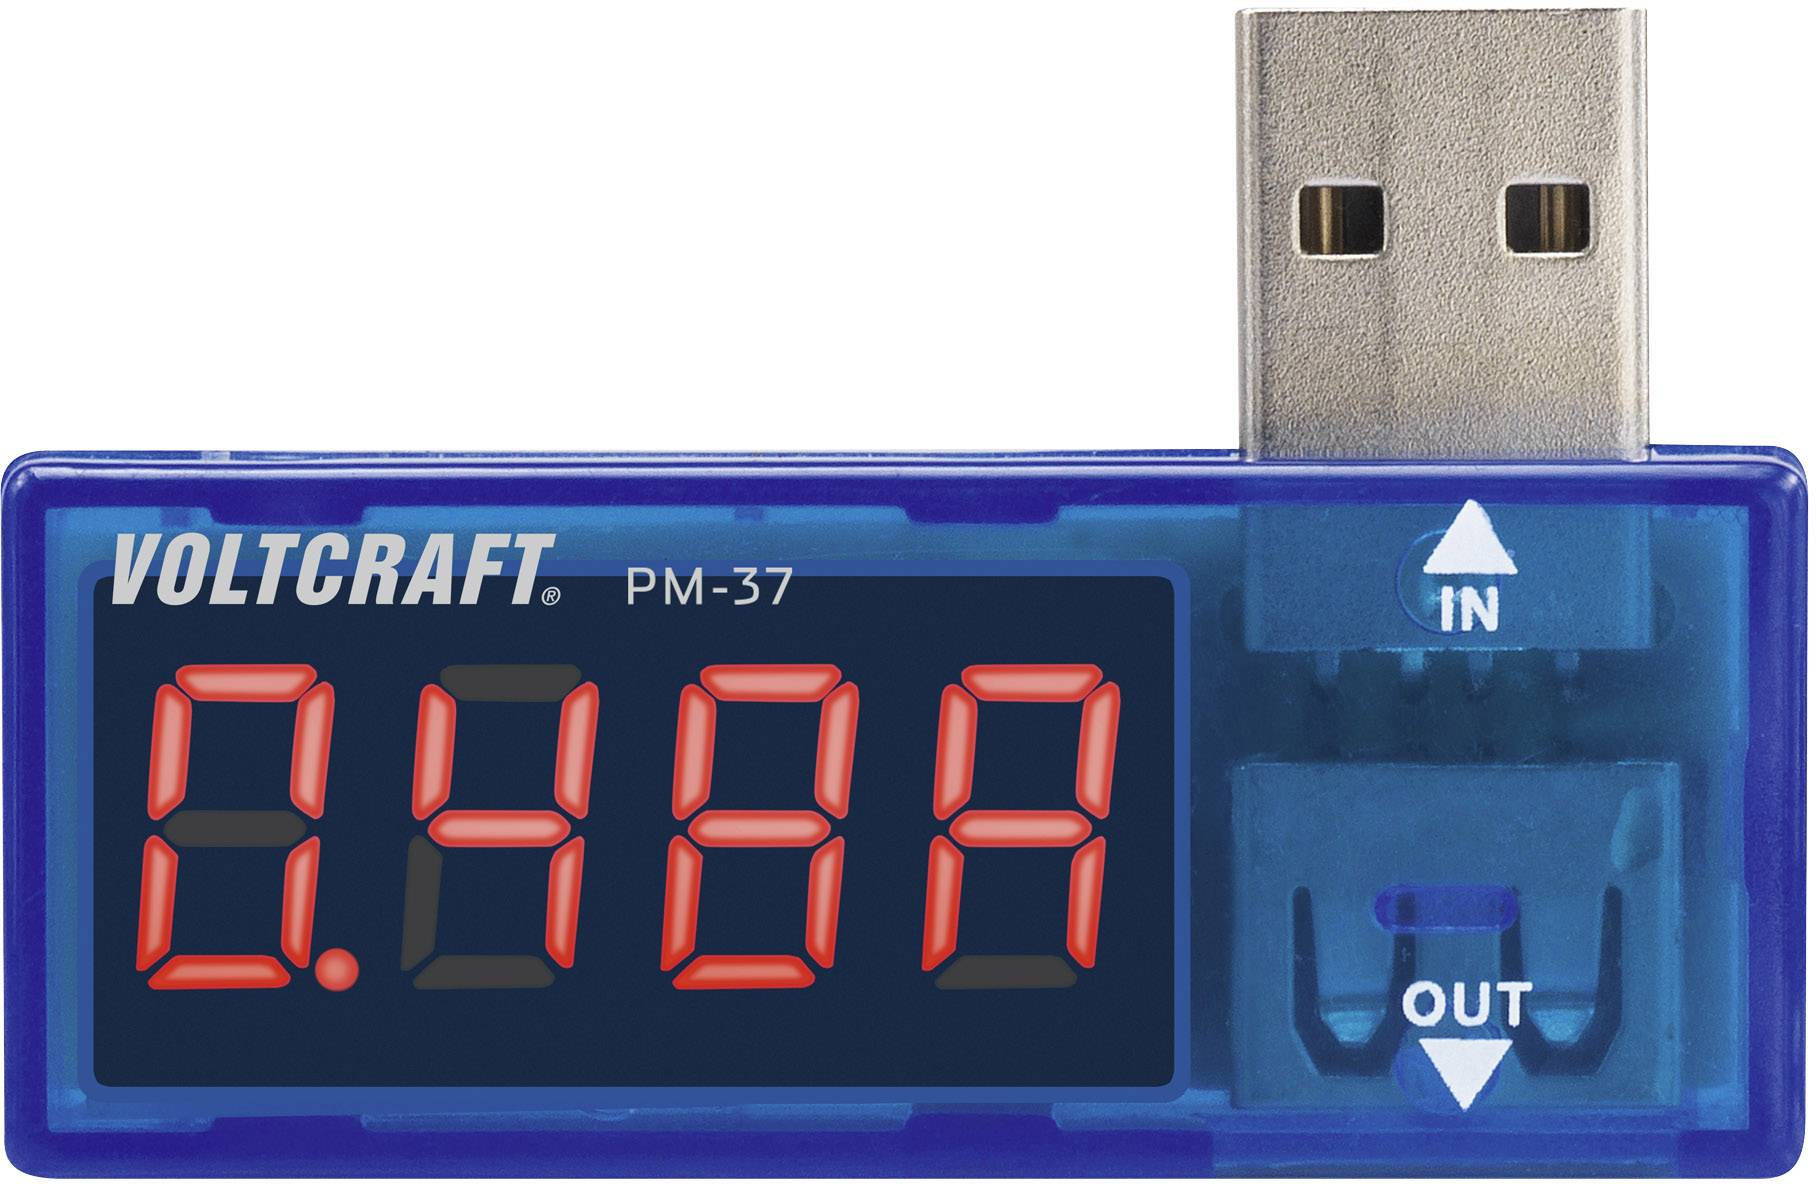 USB merač napätia Power meter Voltcraft PM-37